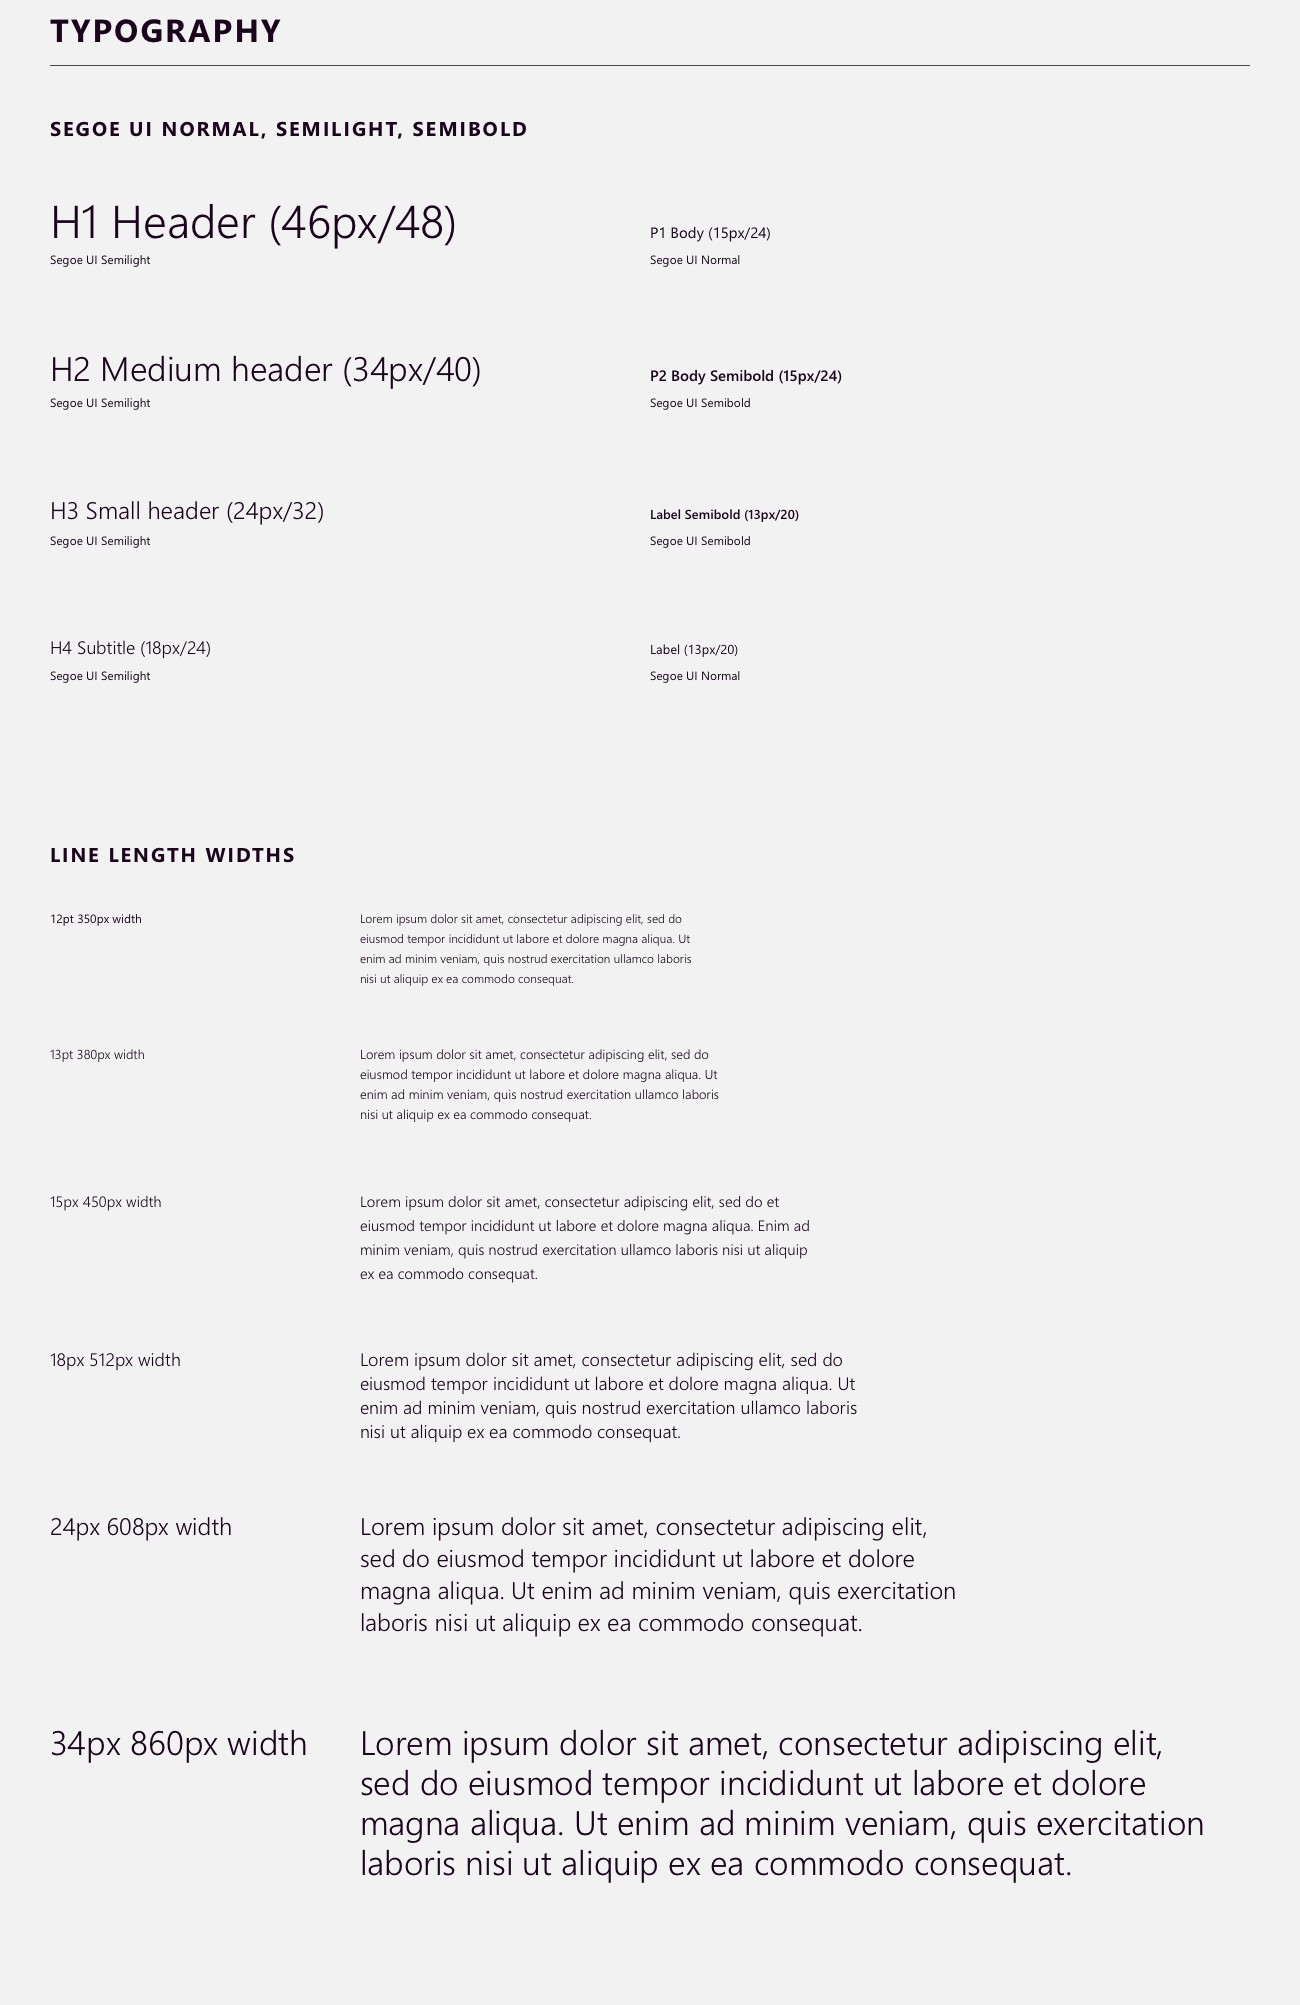 MS_styleGuide-04_Typography.png